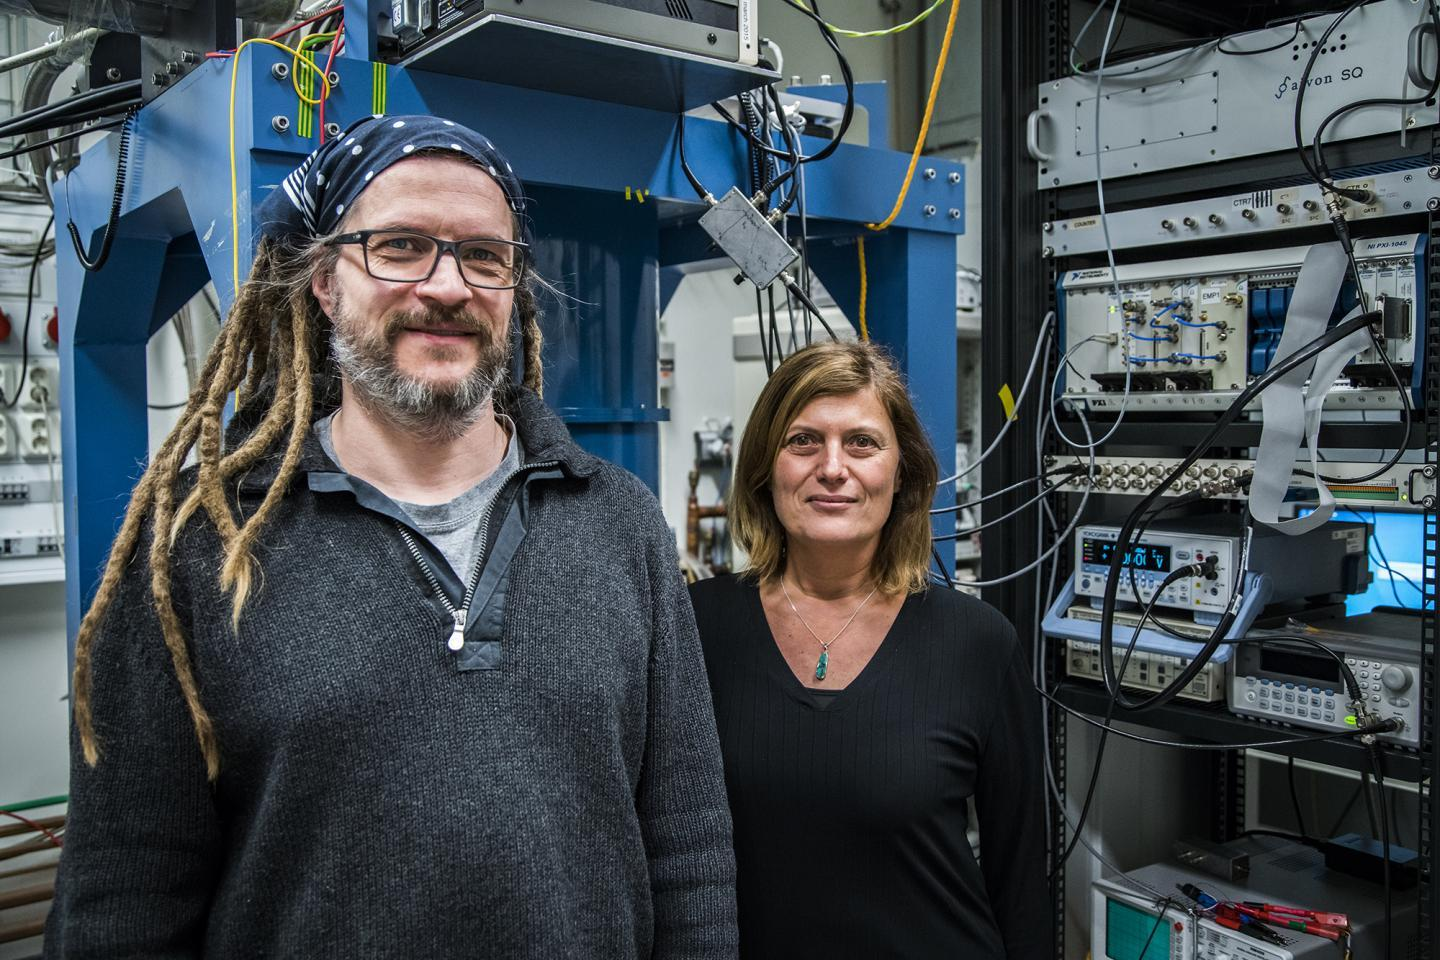 Though potentially important for building topological quantum computers, Thilo Bauch and Floriana Lombardi of Chalmers University of Technology are keen to explore the new physics behind their discovery